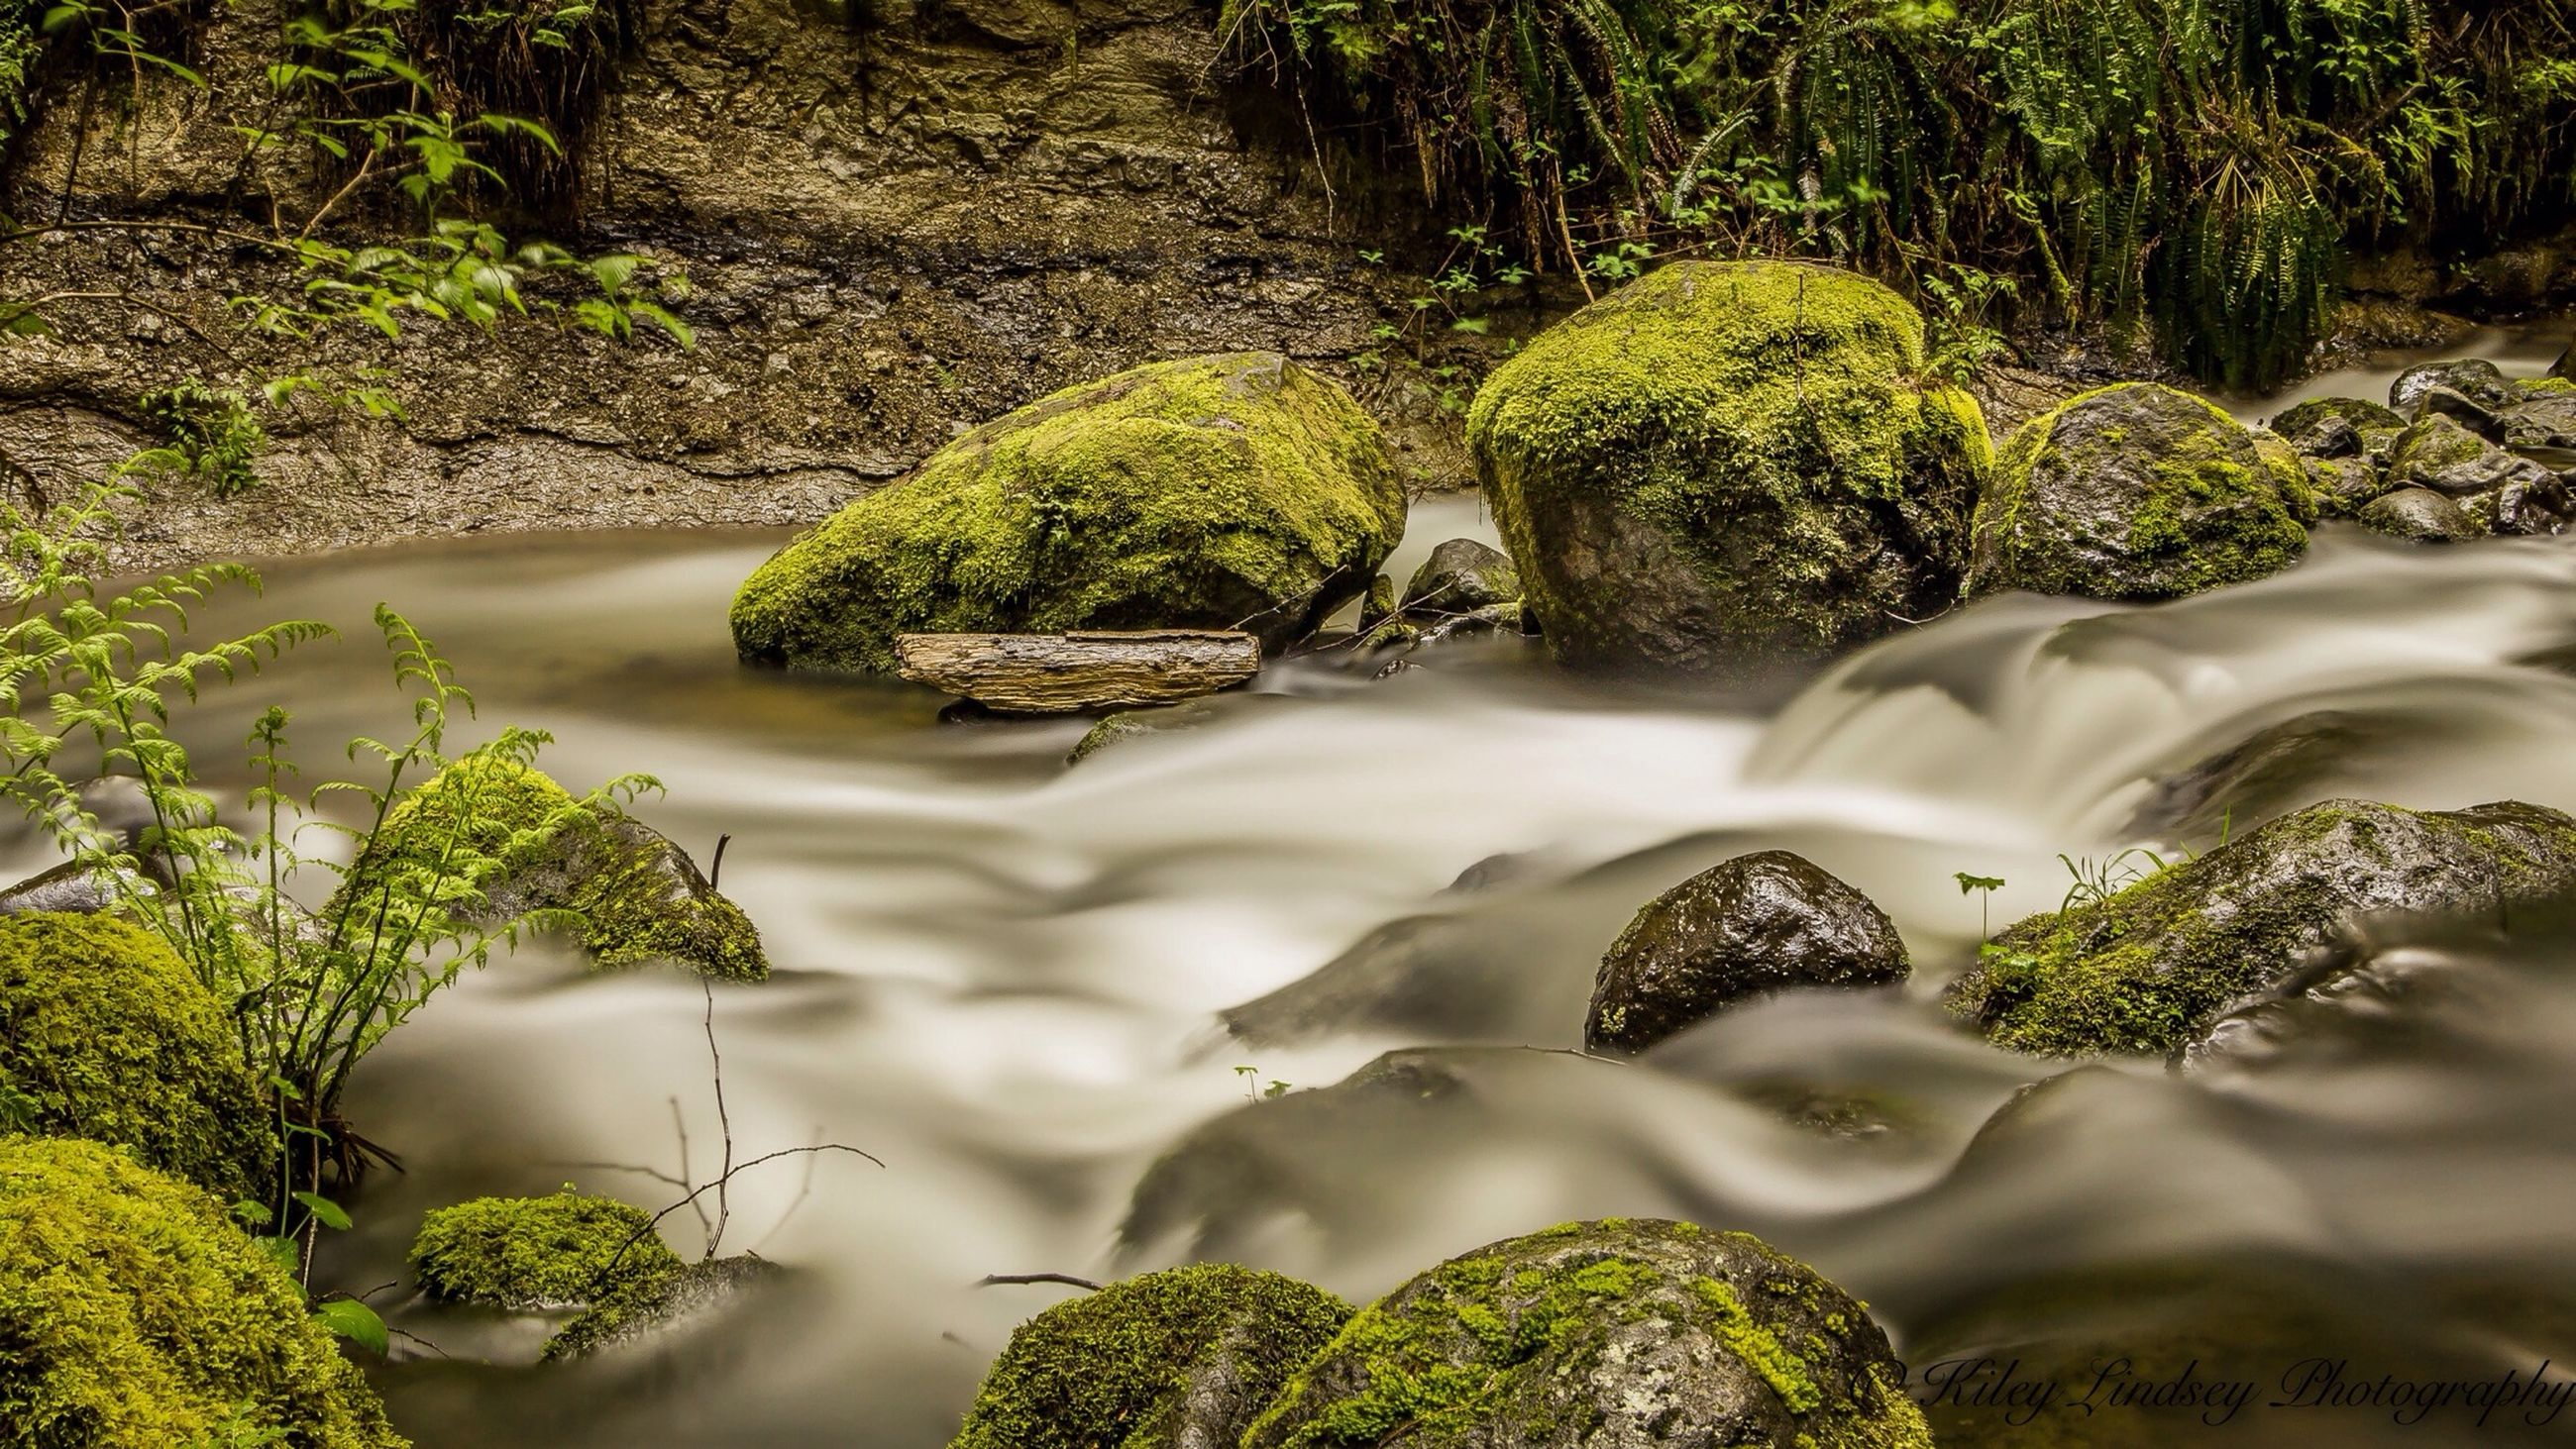 water, plant, nature, growth, green color, rock - object, high angle view, moss, forest, beauty in nature, leaf, tranquility, stream, outdoors, day, tree, no people, flowing water, close-up, sunlight